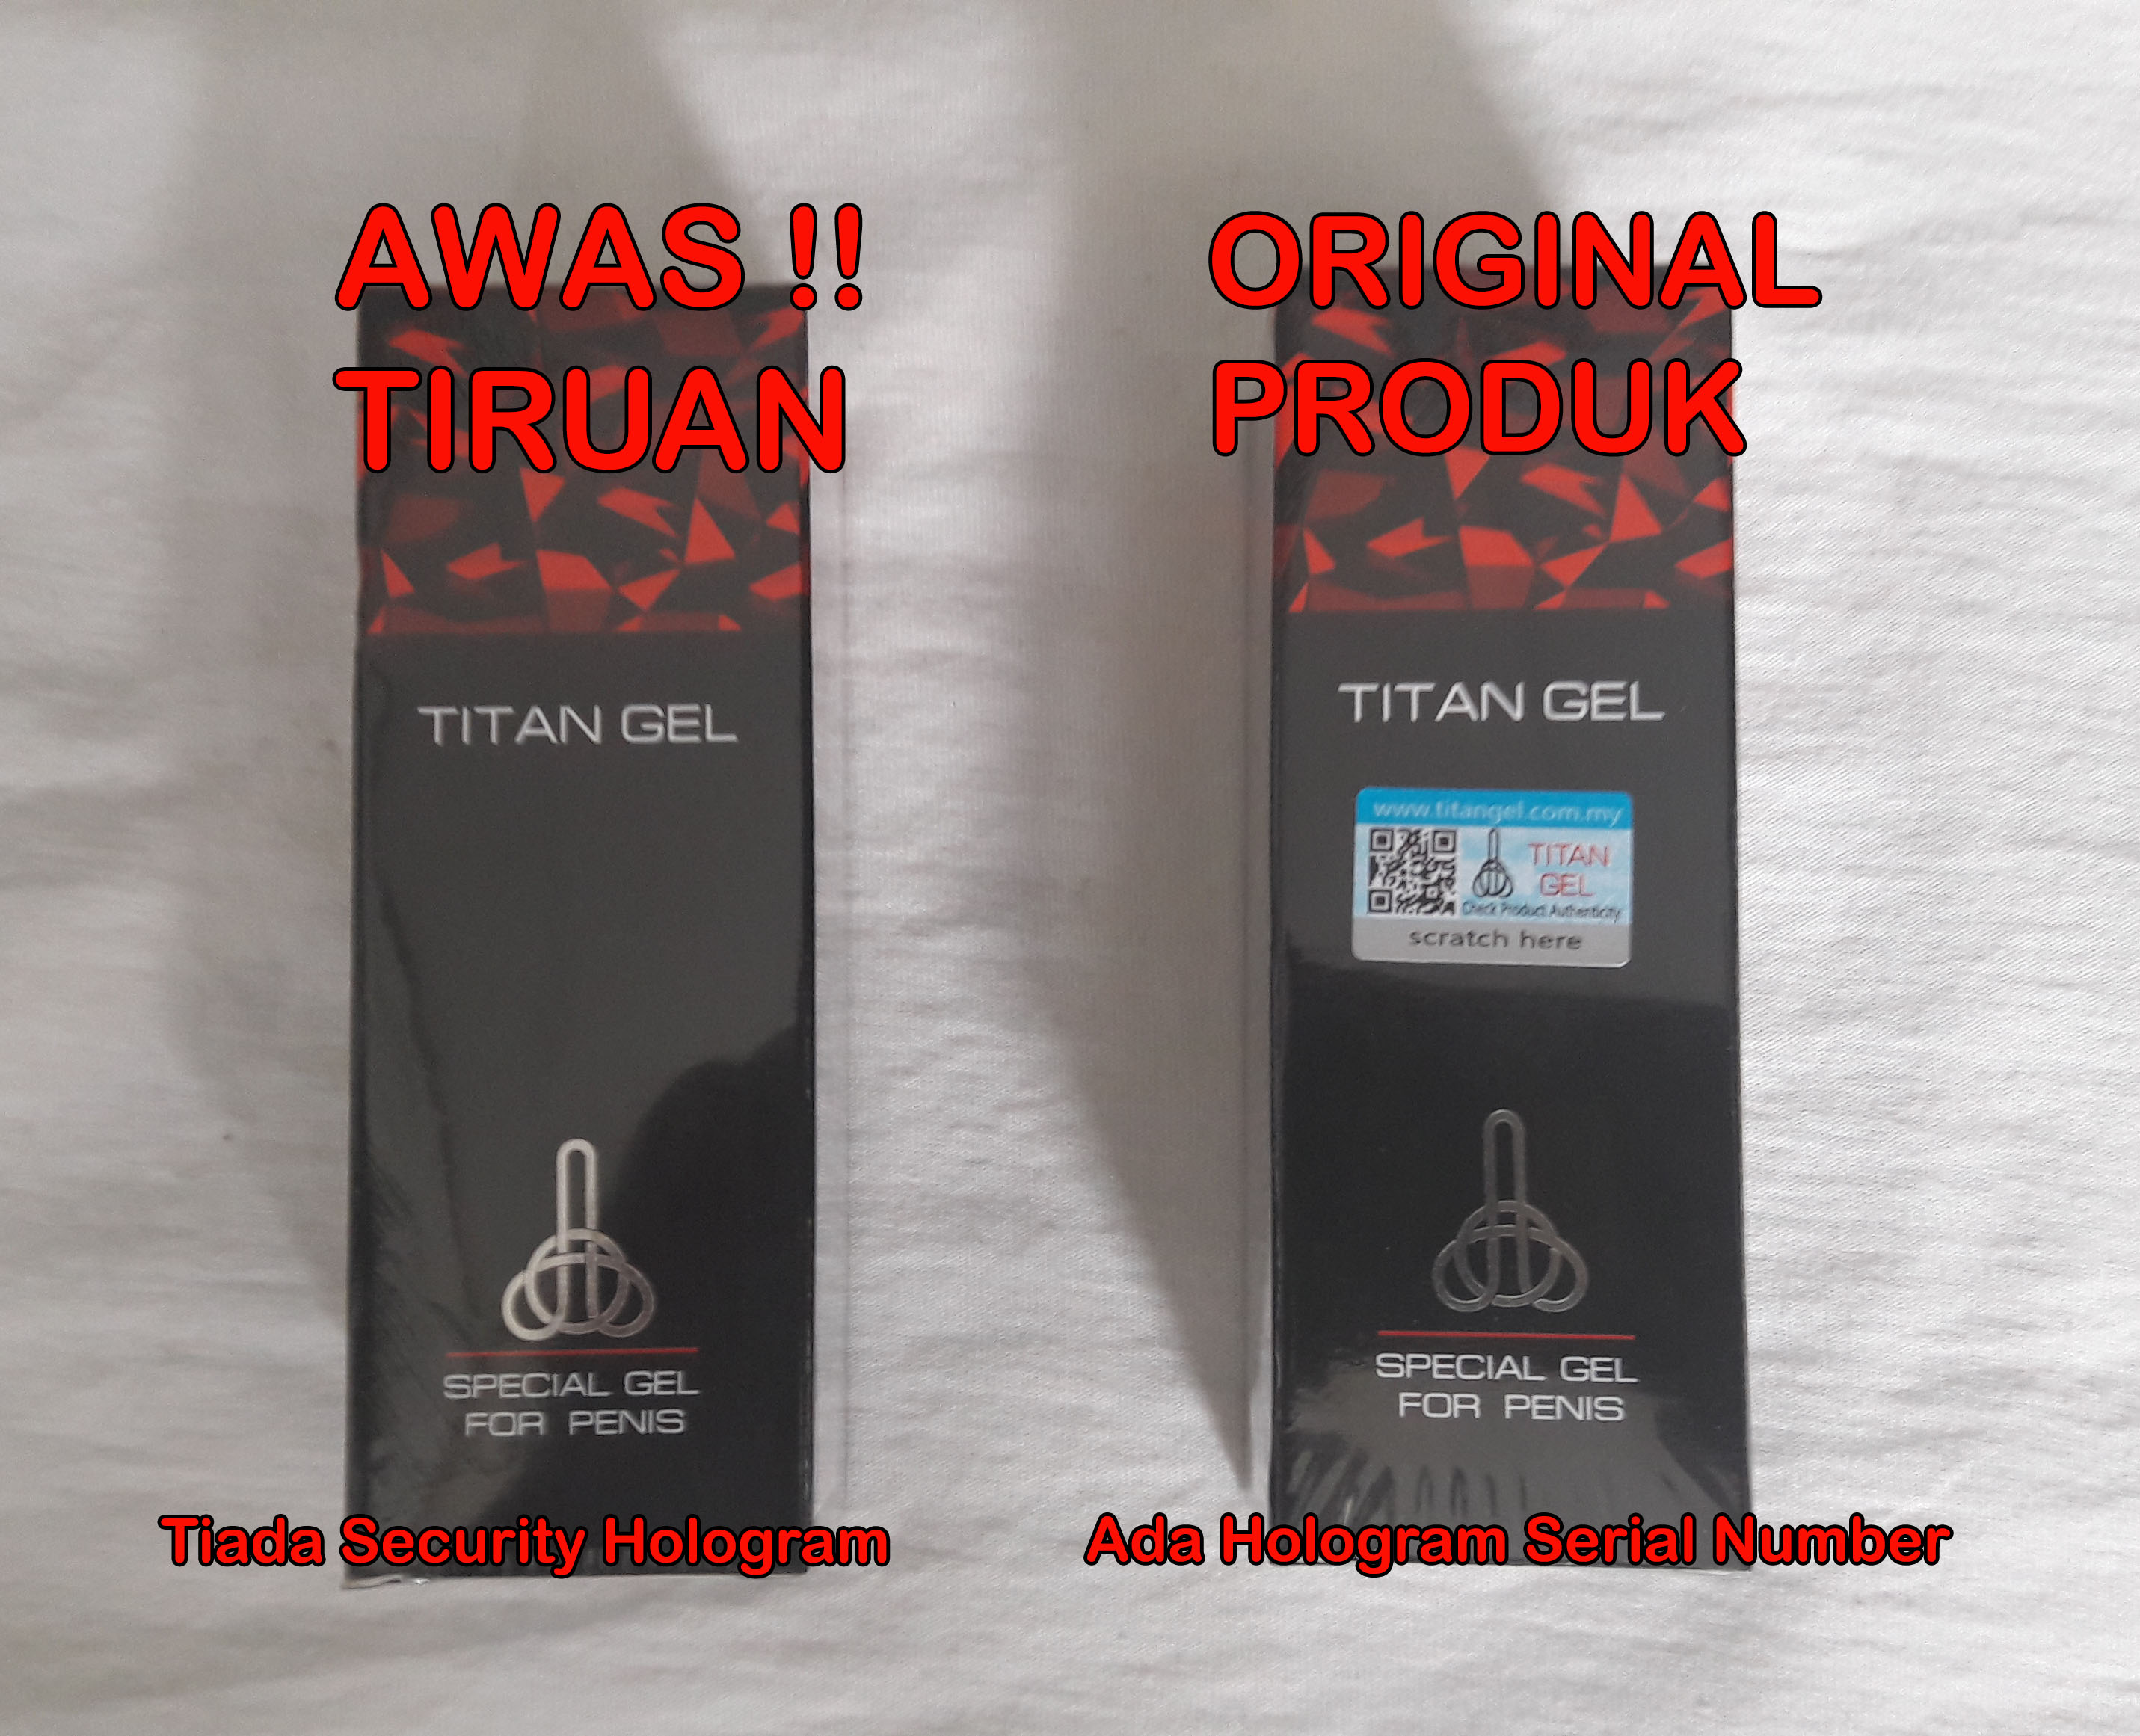 titan gel original vs tiruan